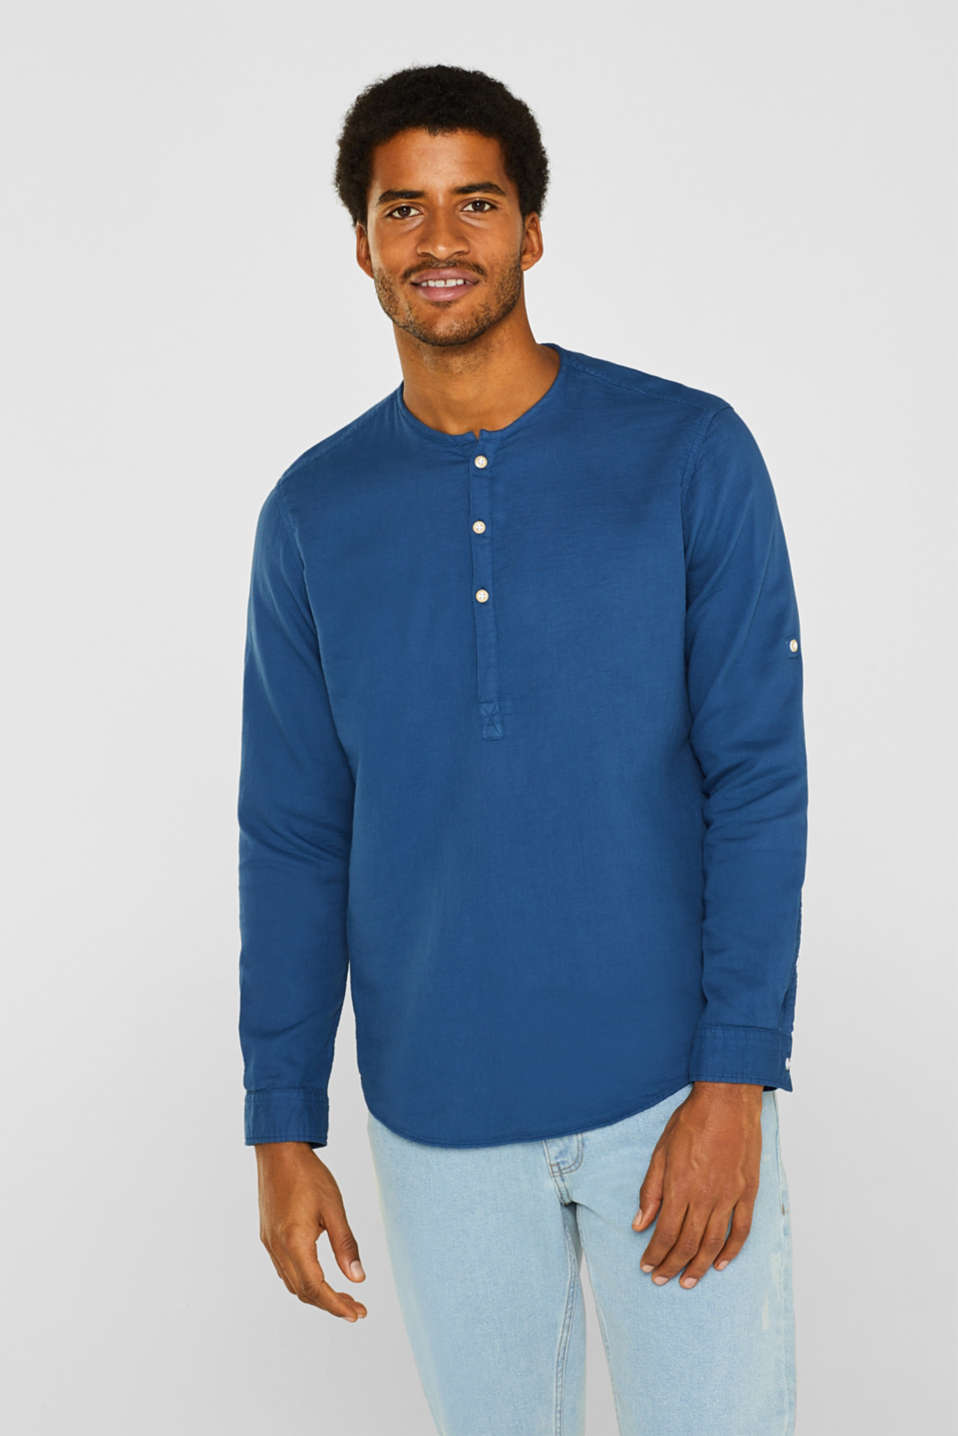 Esprit - Seersucker long sleeve top made of 100% cotton